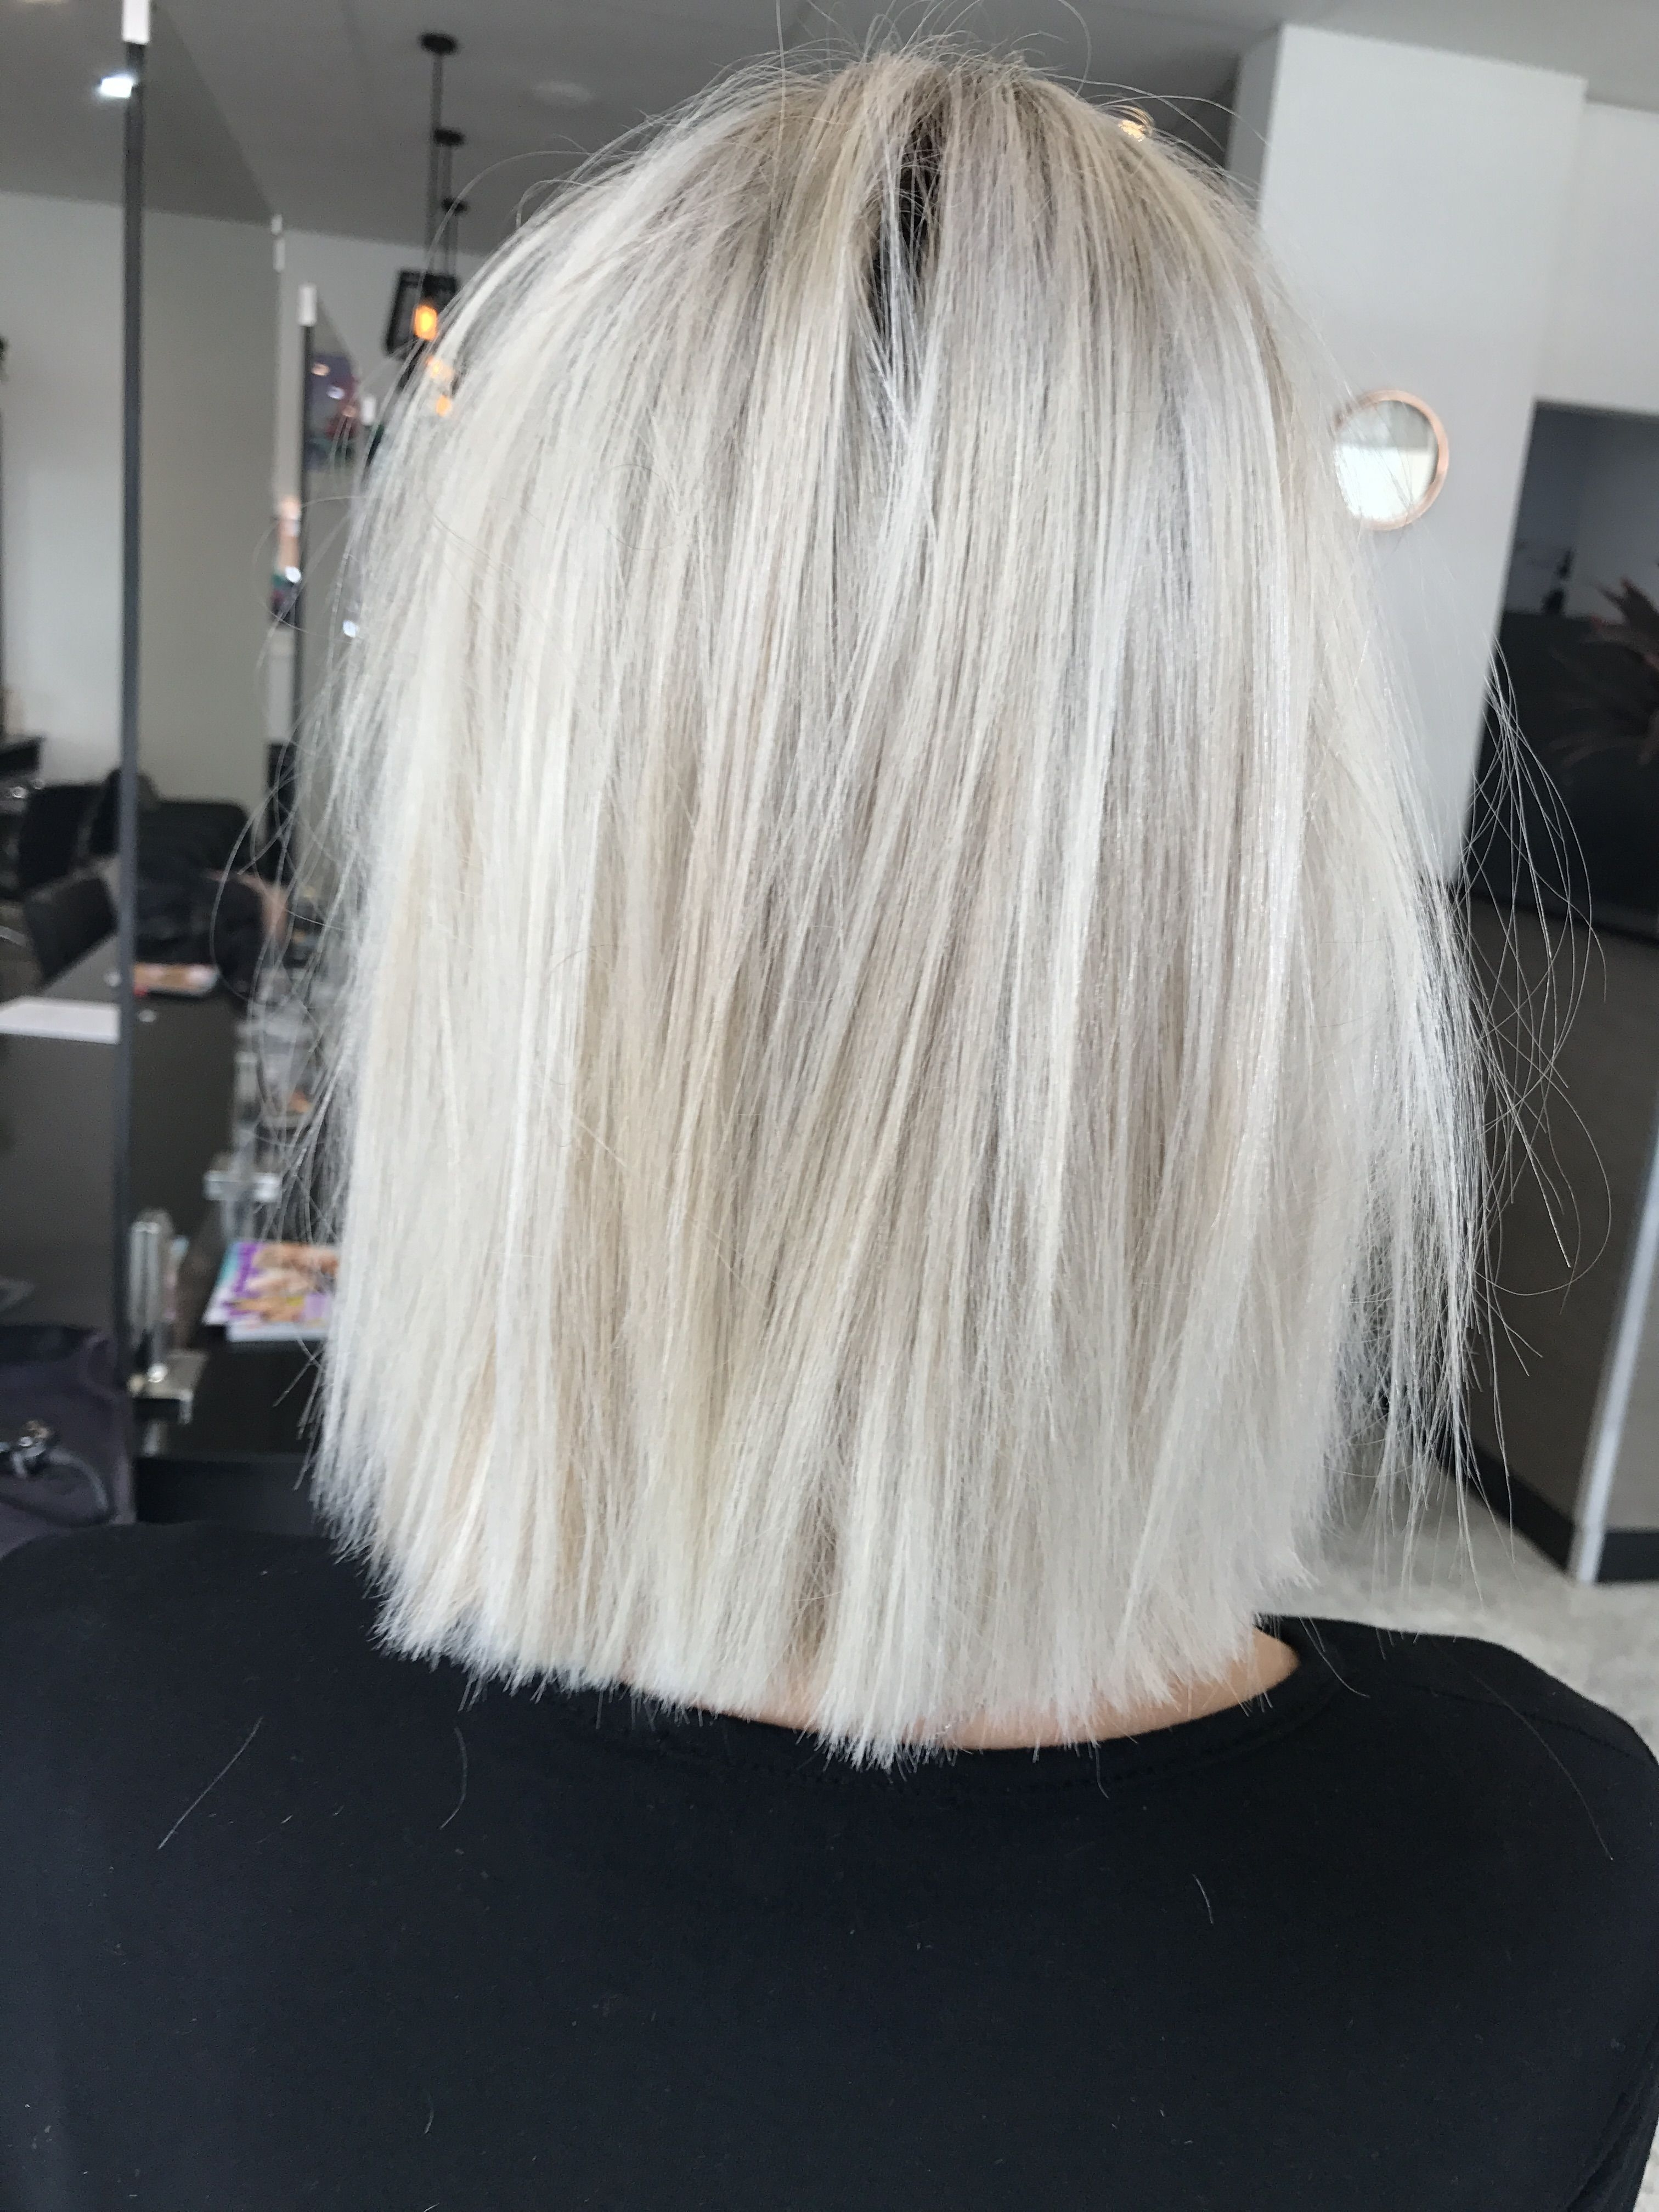 Well Liked Cream Colored Bob Blonde Hairstyles Pertaining To Blonde Hair Short Lob Textured Straight Hair Cut Colour Cool Ash (View 20 of 20)